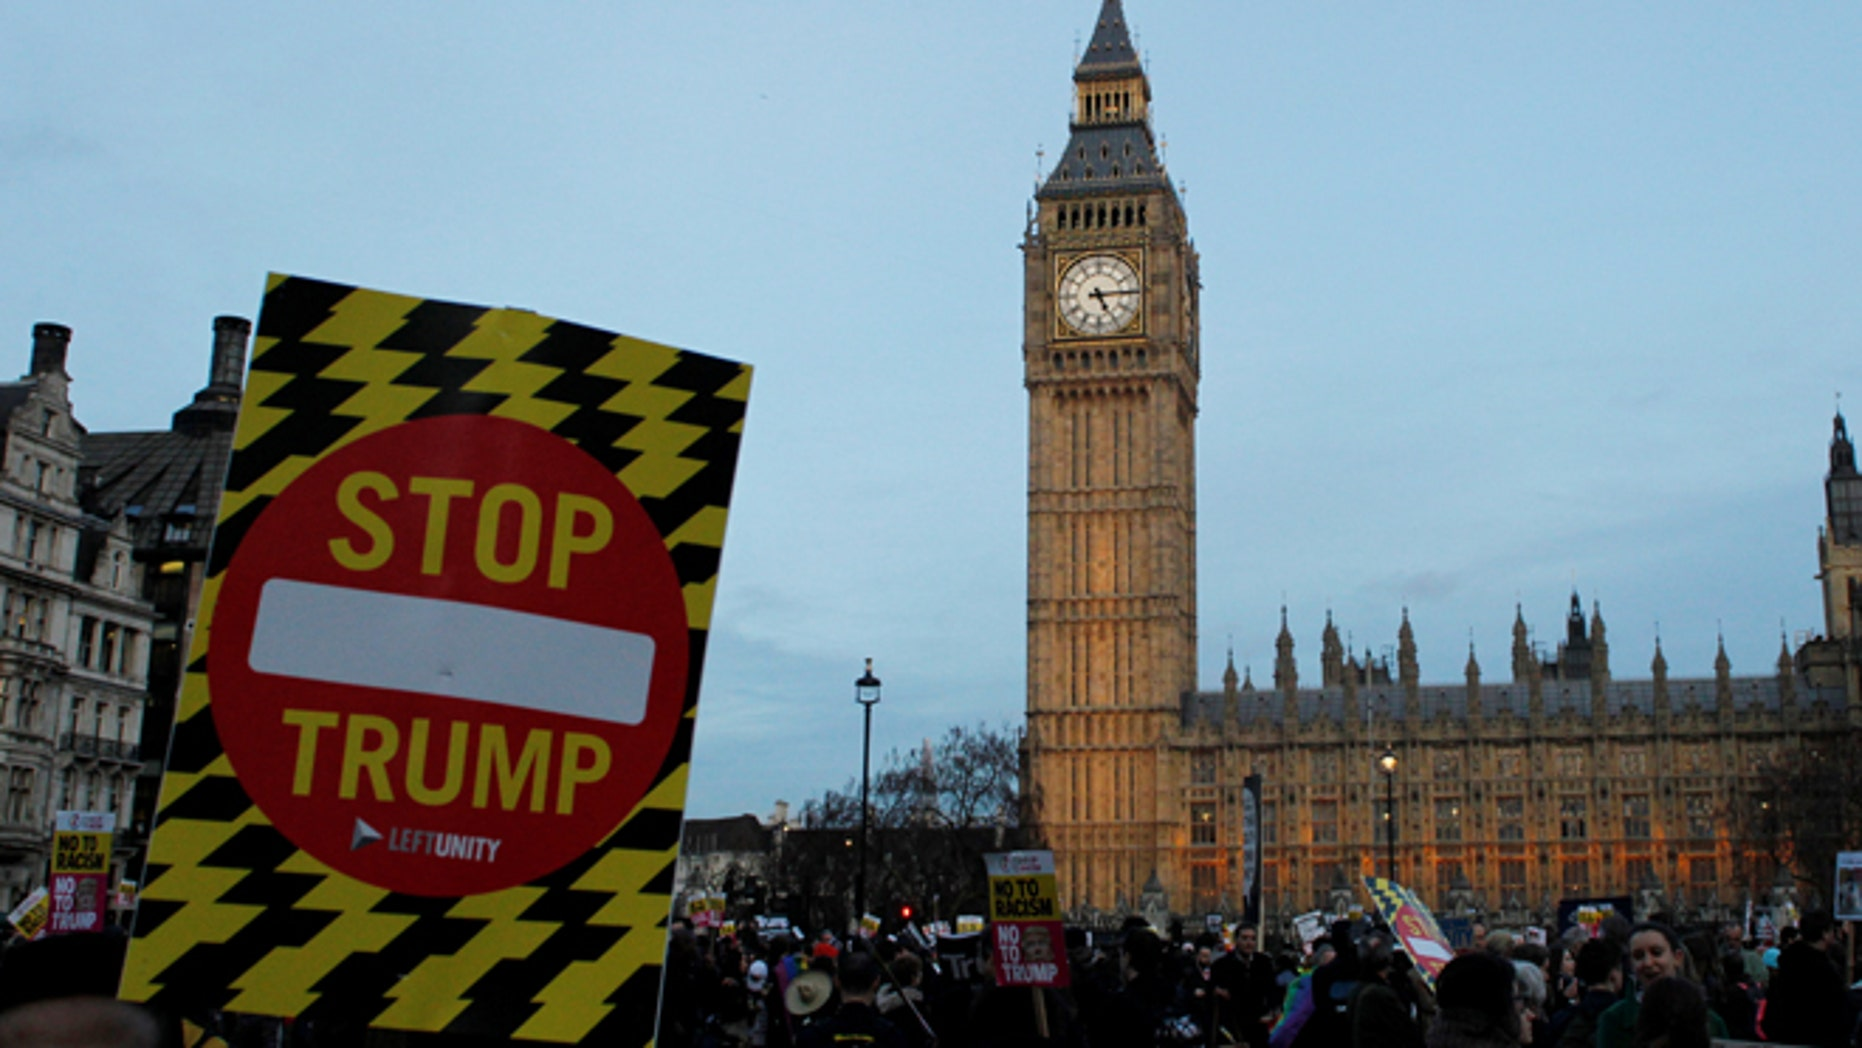 Feb. 20, 2017: A demonstrator holds a placard during a protest against U.S. President Donald Trump in London, Britain.